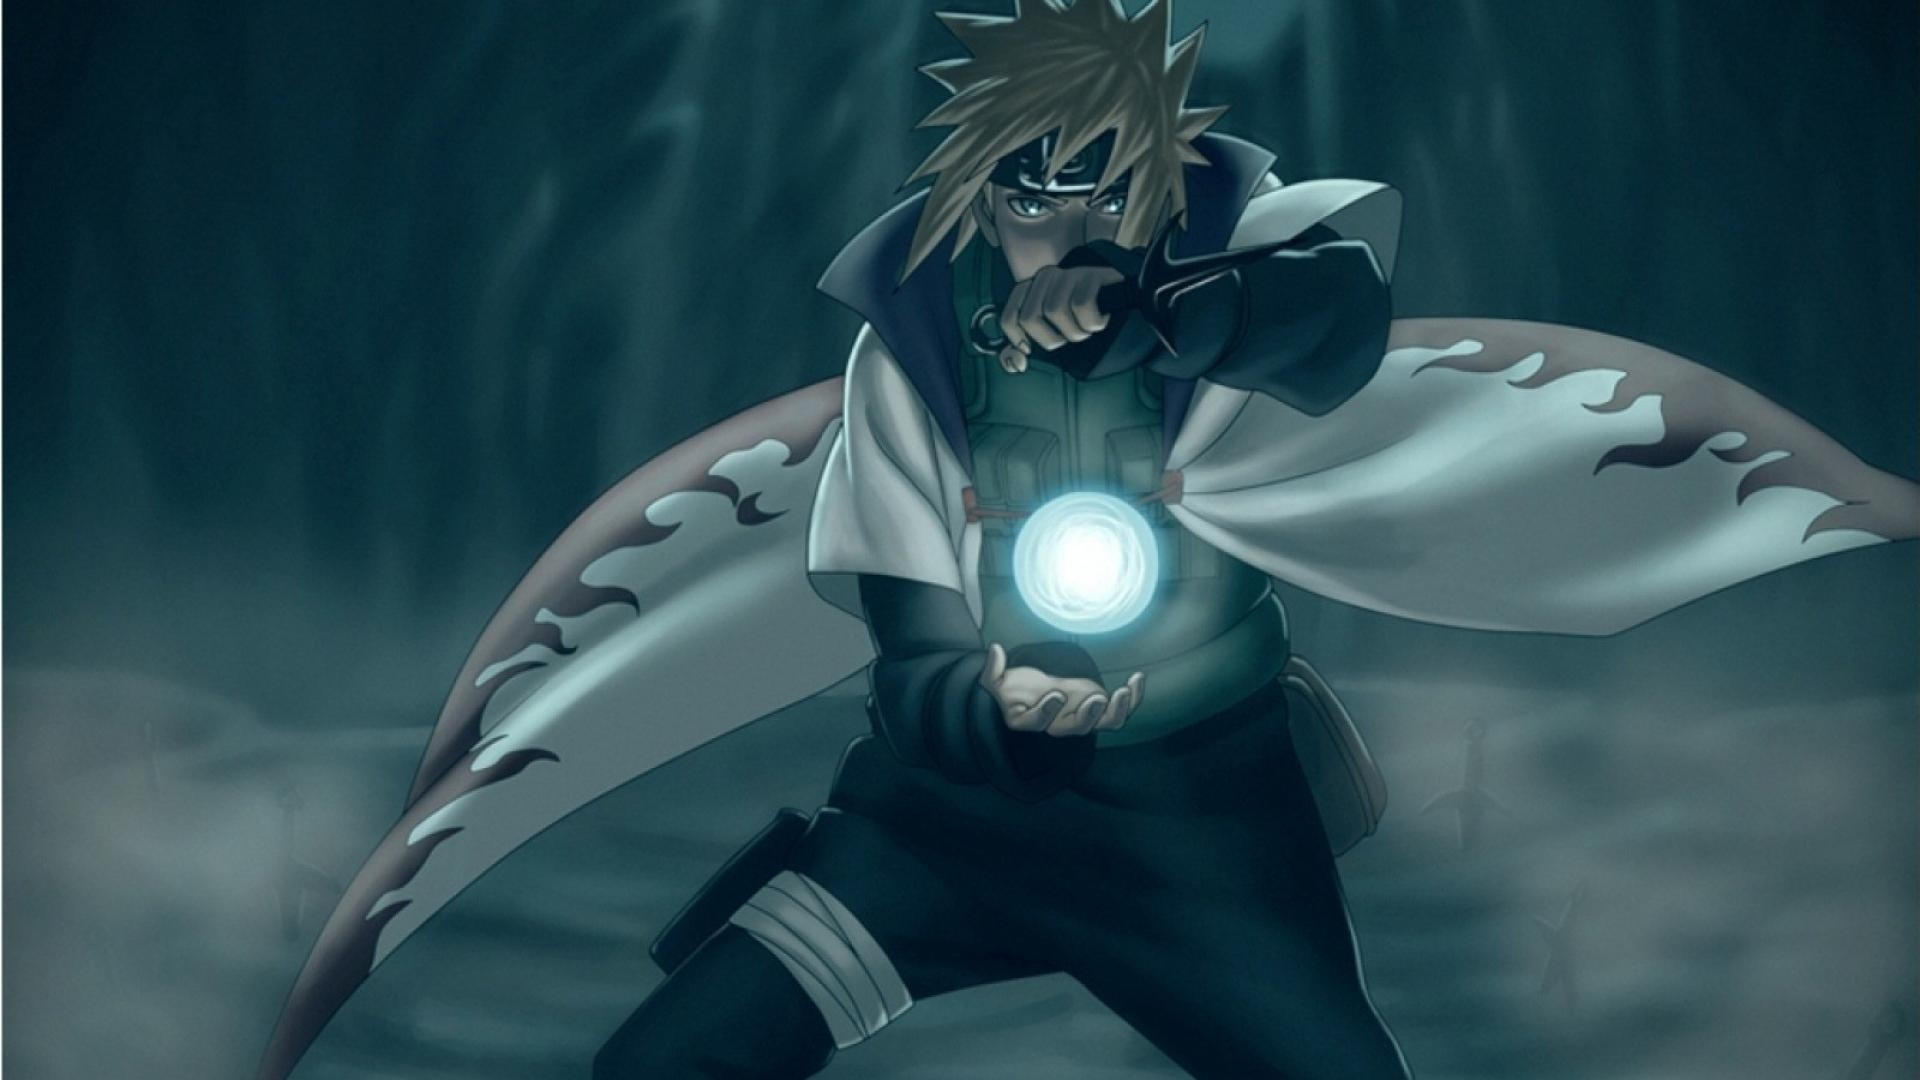 Naruto wallpapers 1920x1080 69 images - Naruto images and wallpapers ...